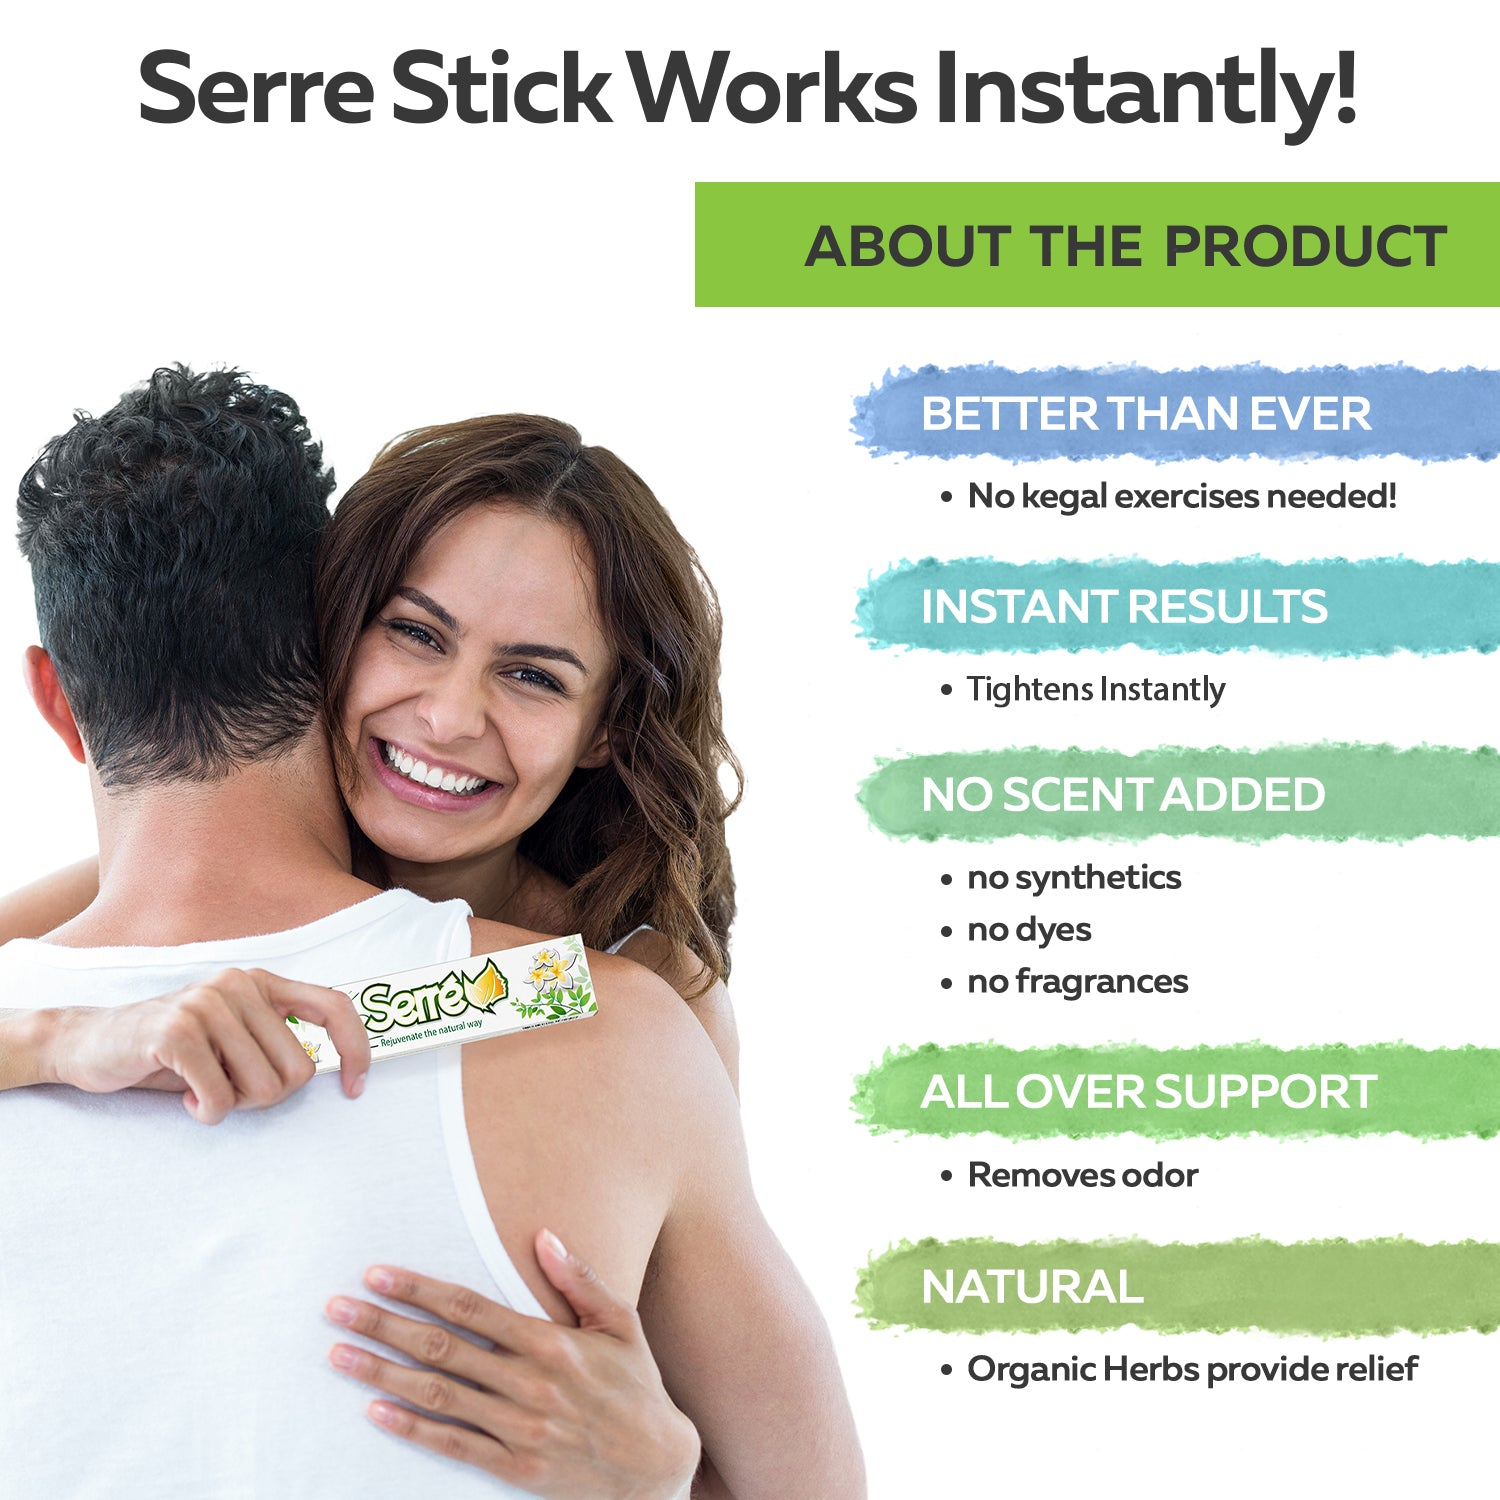 Serre Stick Vaginal Care